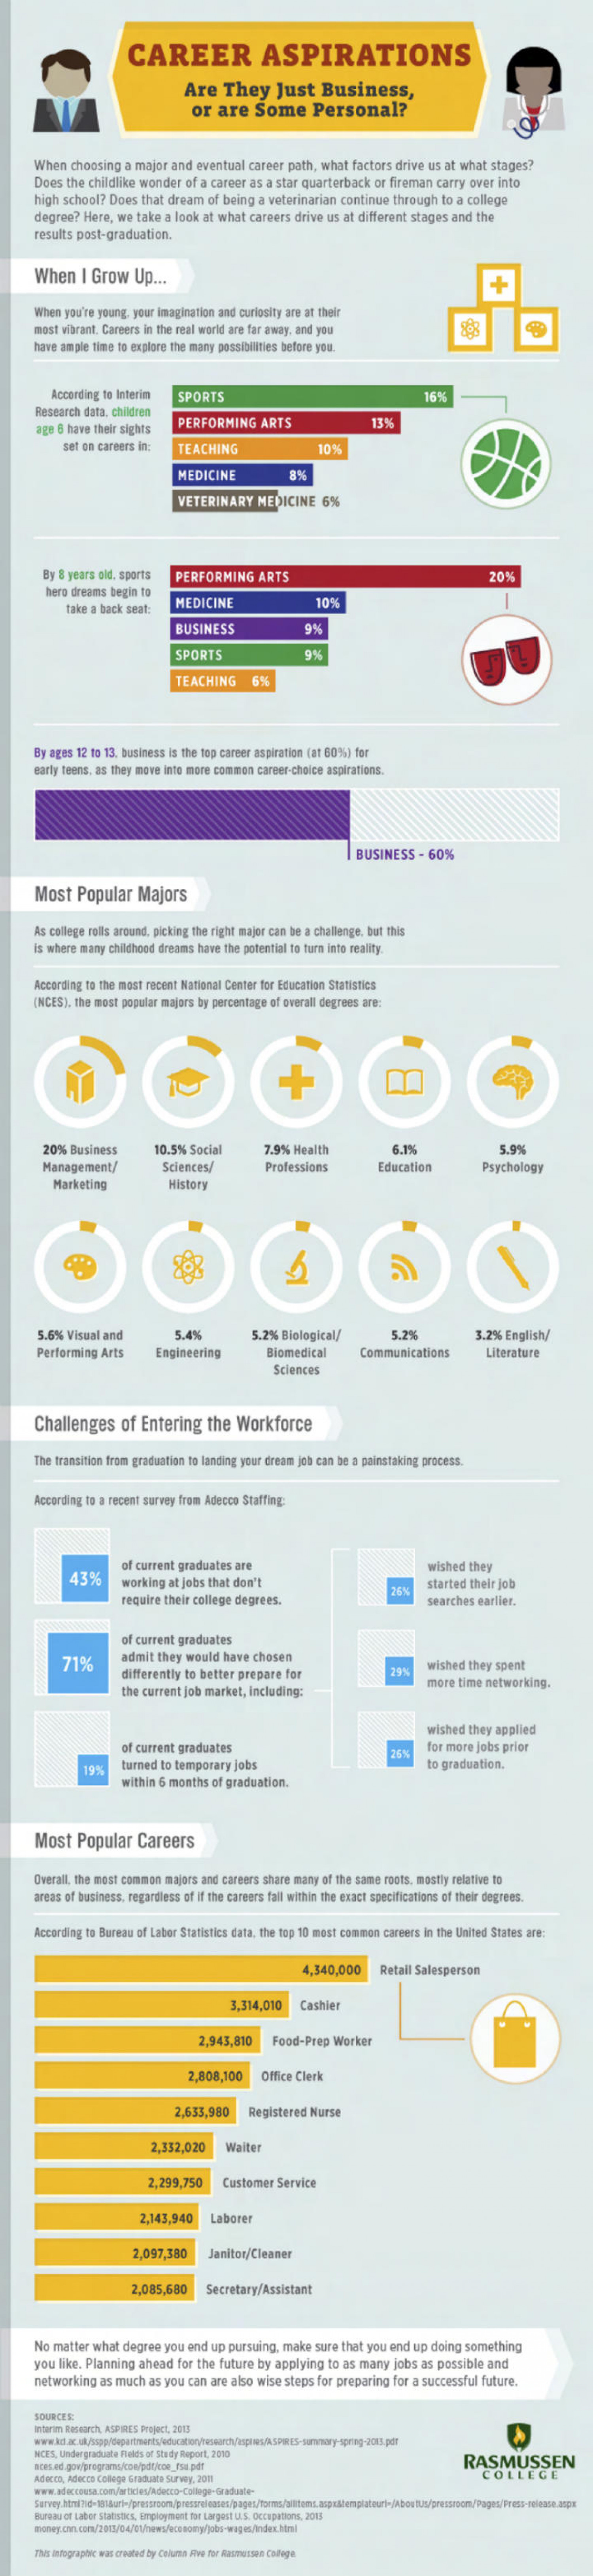 Career Aspirations: Are They Just Business or are Some Personal? Infographic